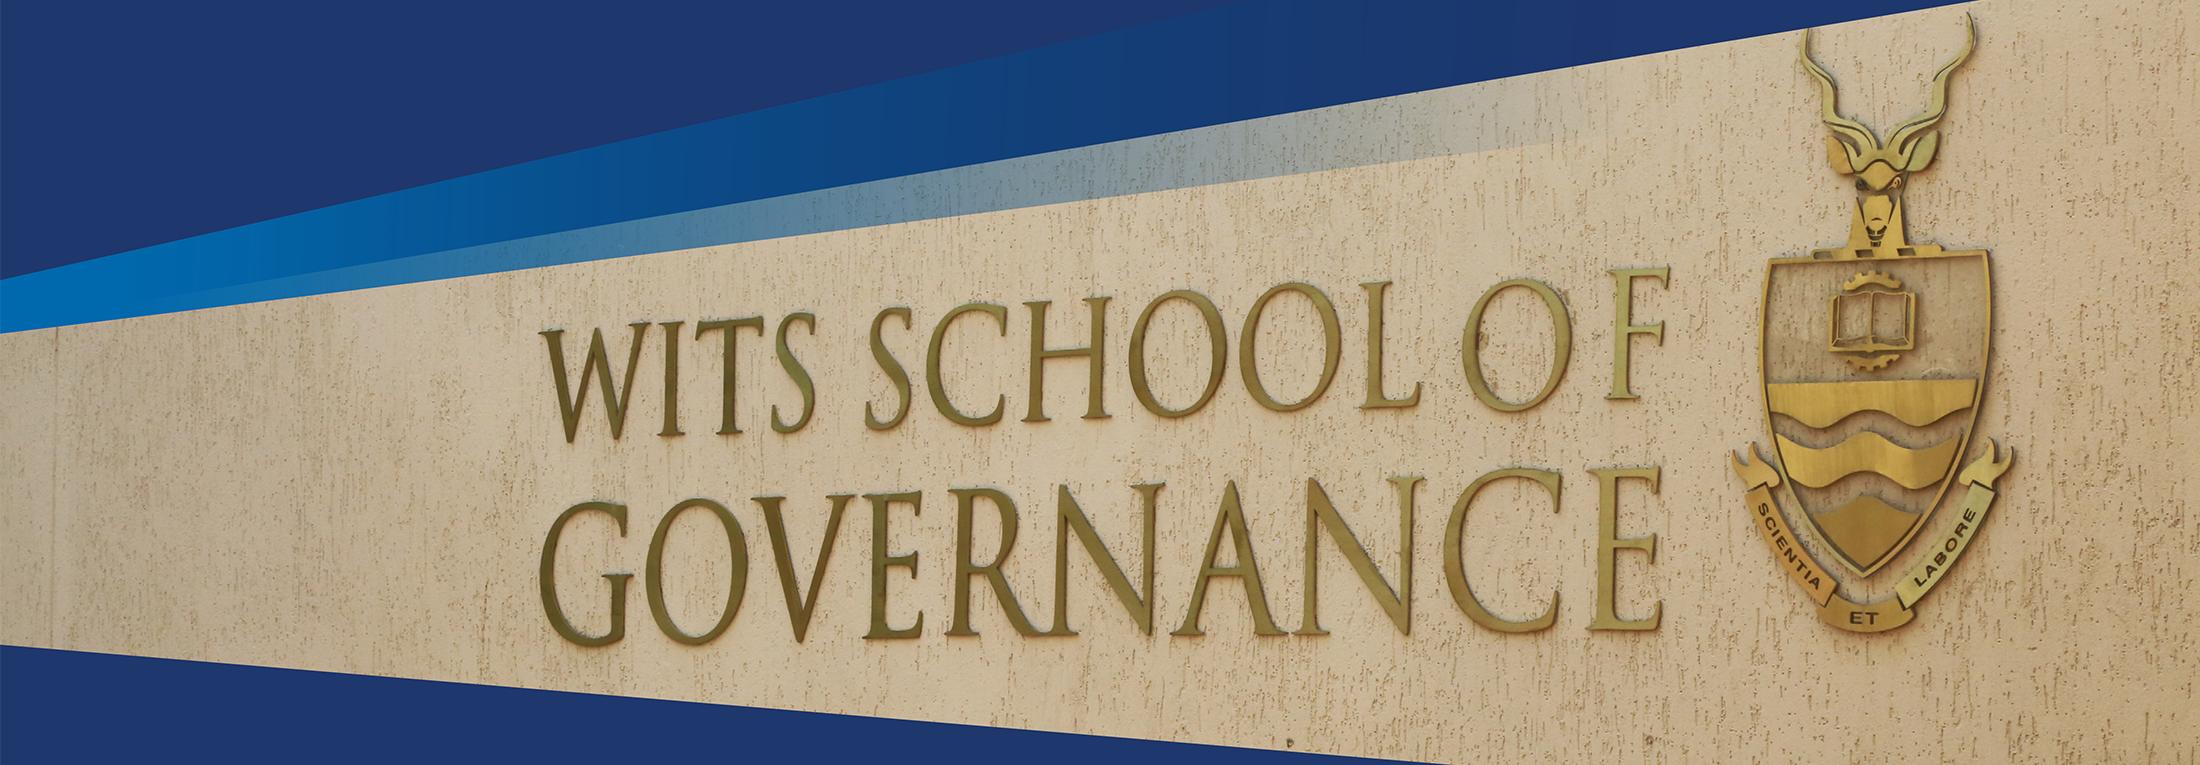 Wits School of Governance - Wits University